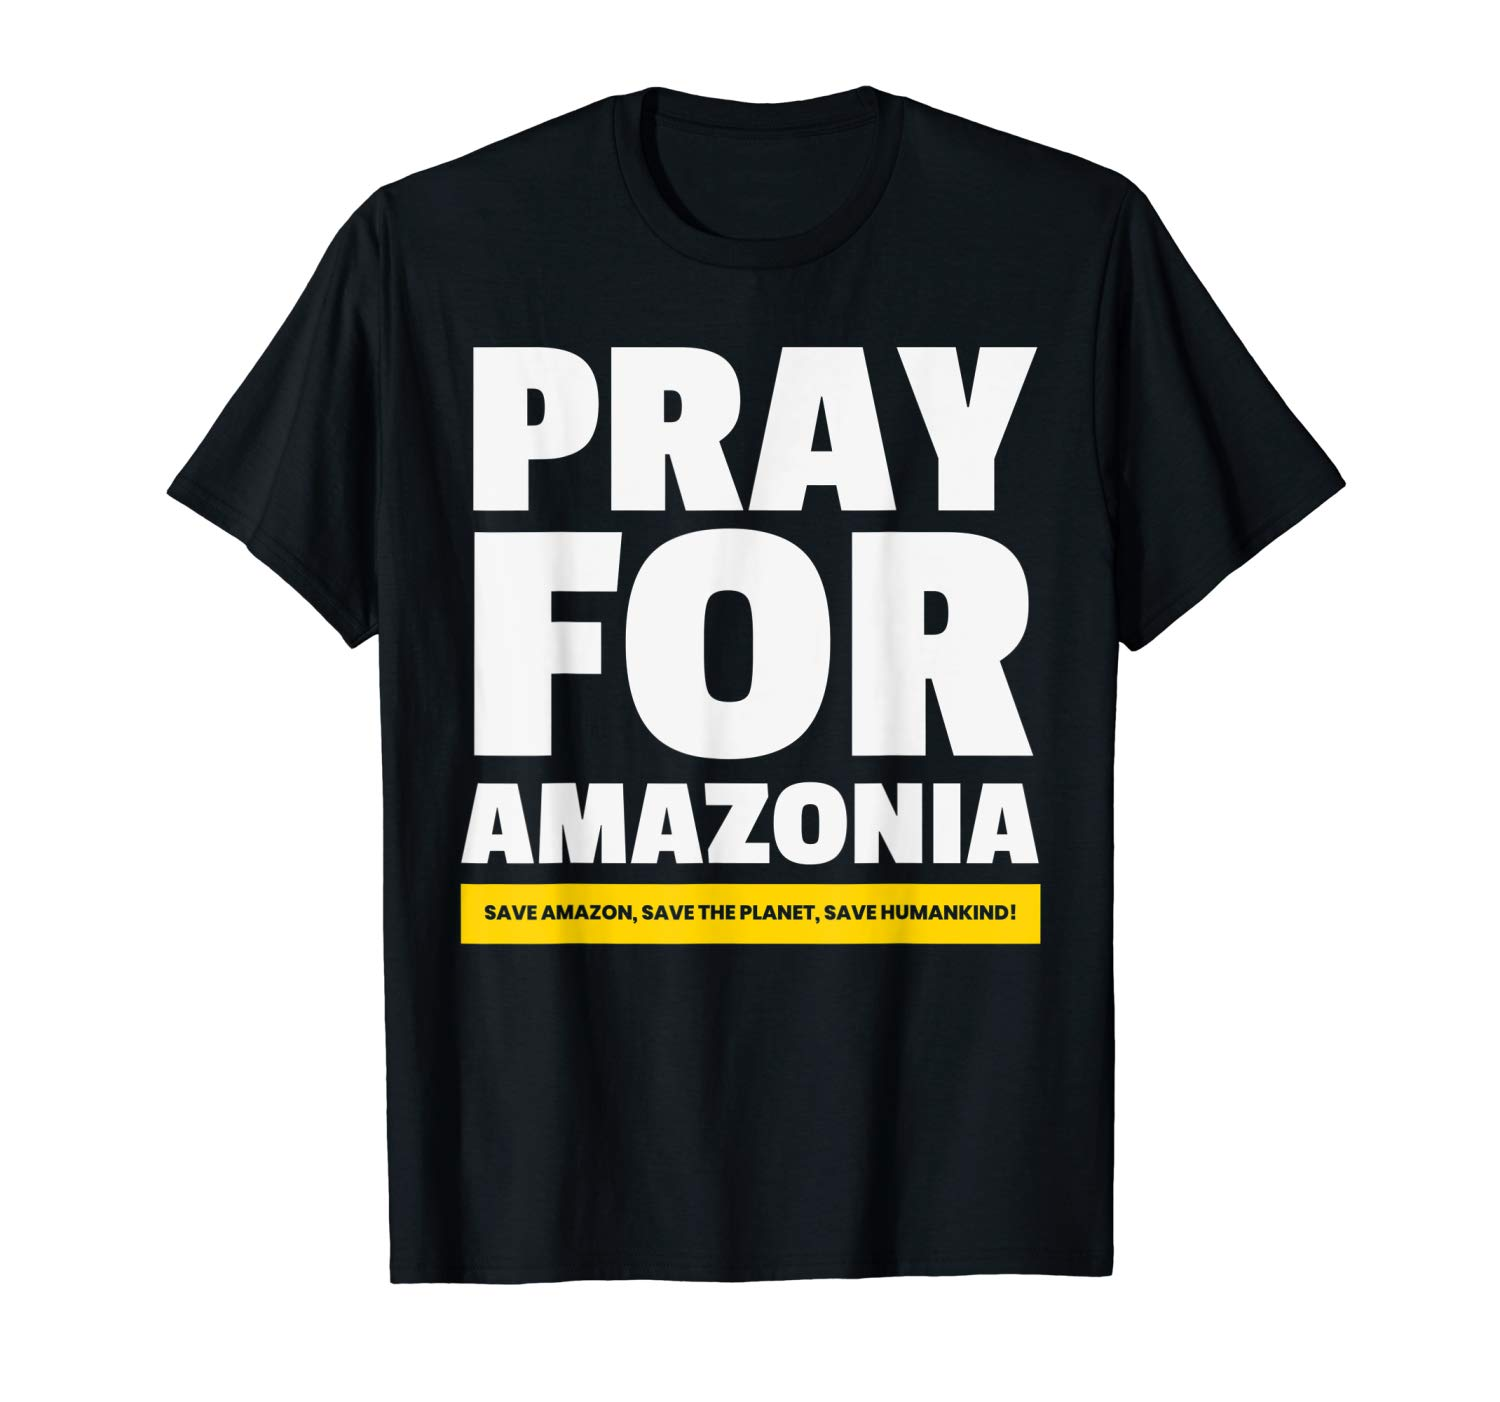 Save Amazon The Planet Humankind Pray For Amazonia T Shirt